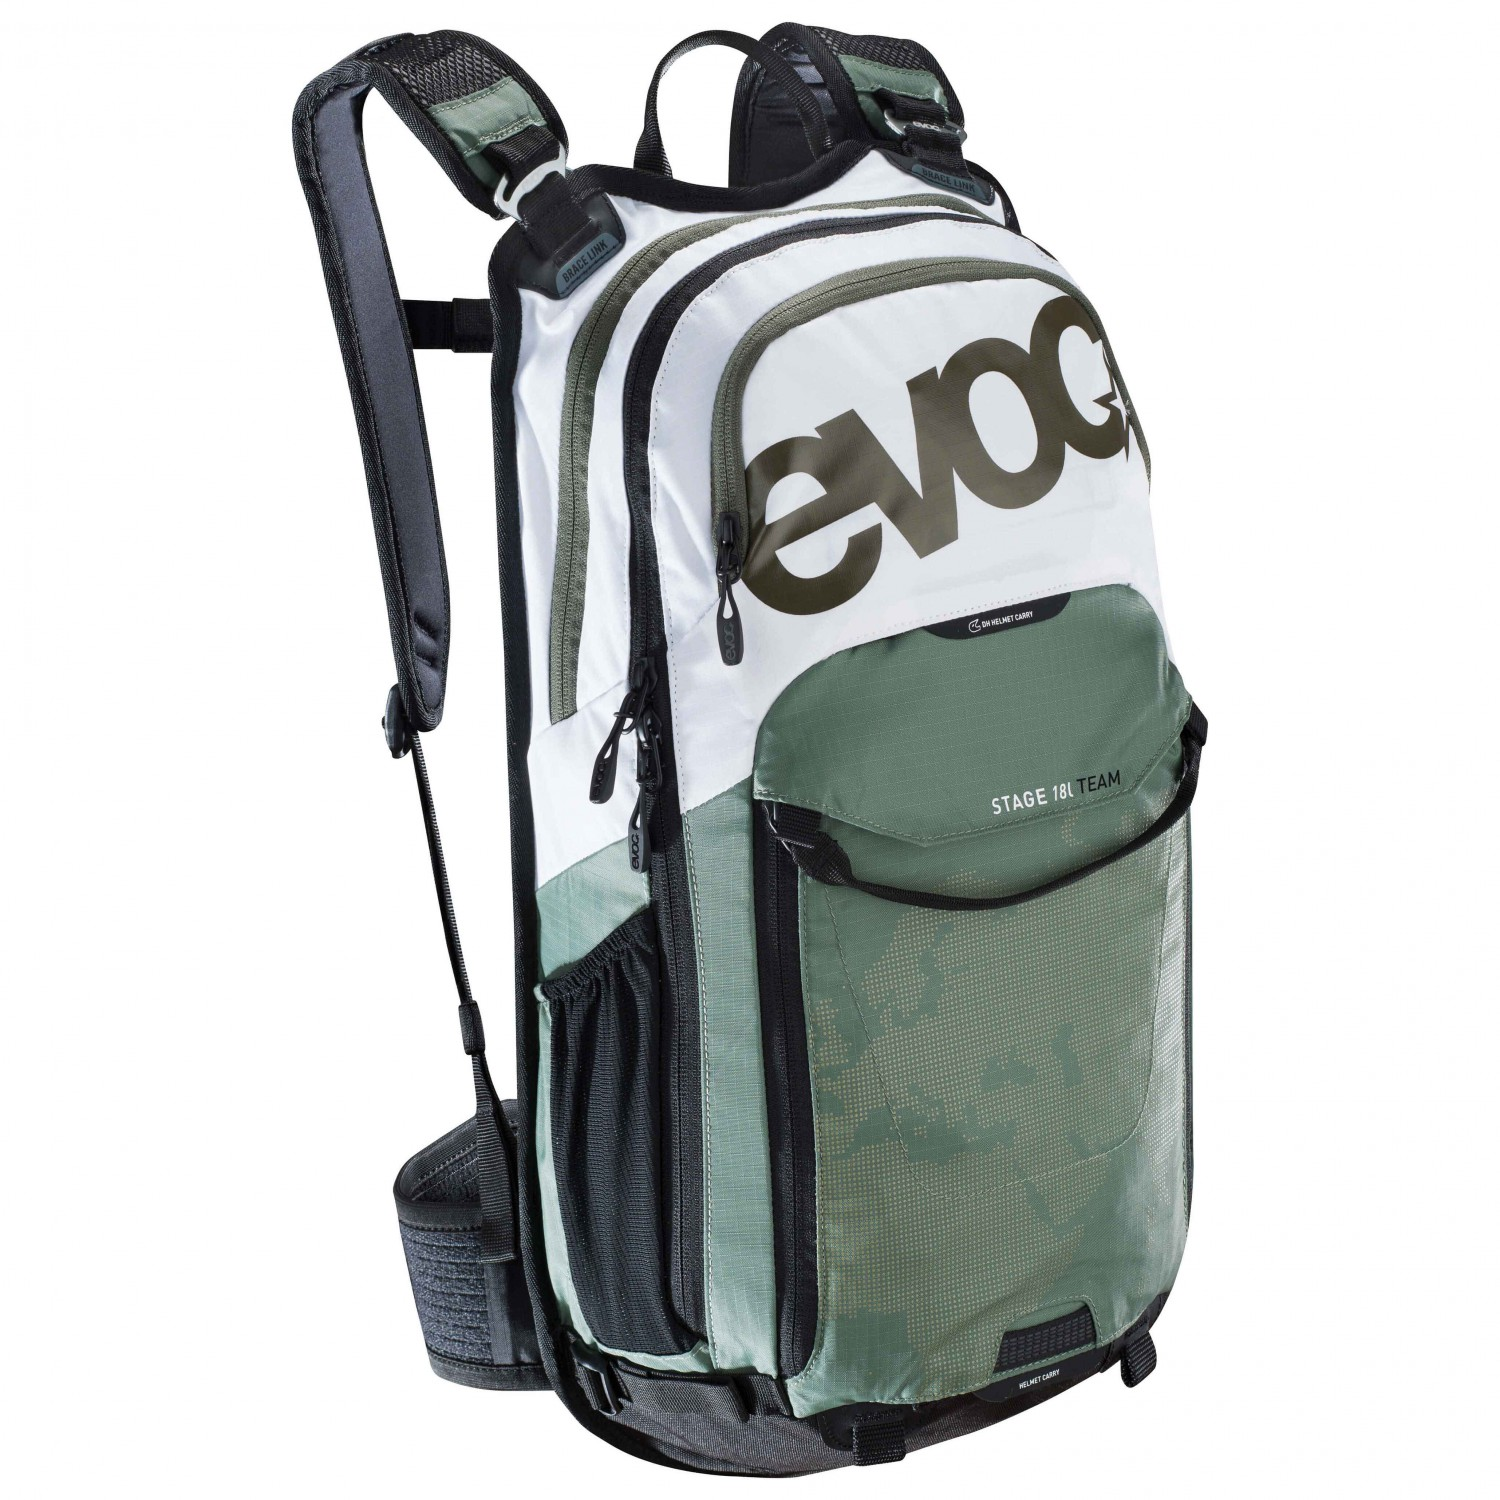 a532c46de Evoc Stage Team 18L - Cycling Backpack | Buy online | Alpinetrek.co.uk